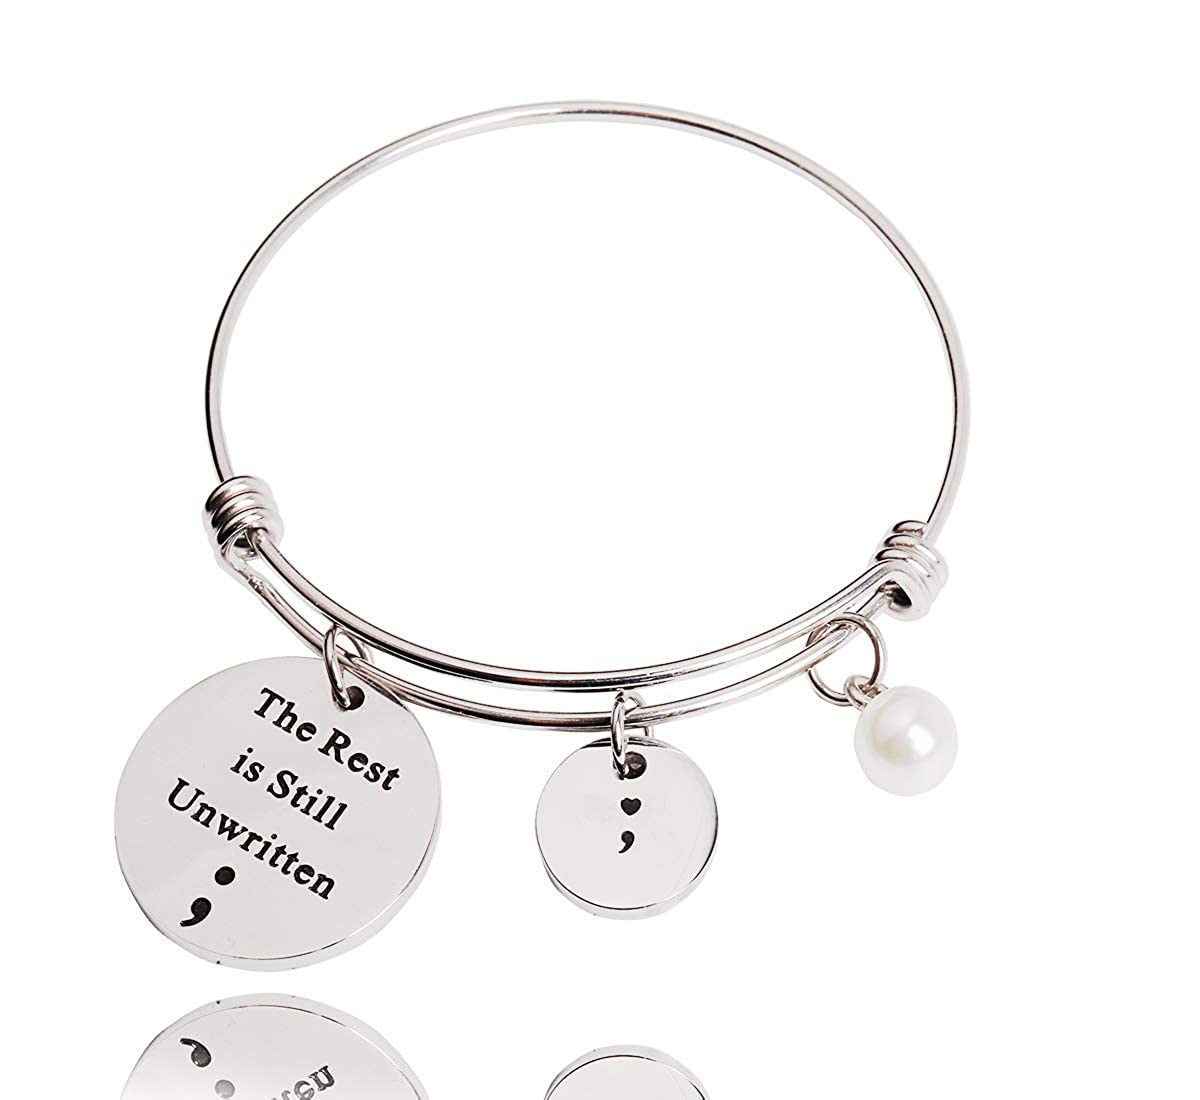 Amazon.com: REEBOOOR Semicolon Jewelry - Llavero con pulsera ...